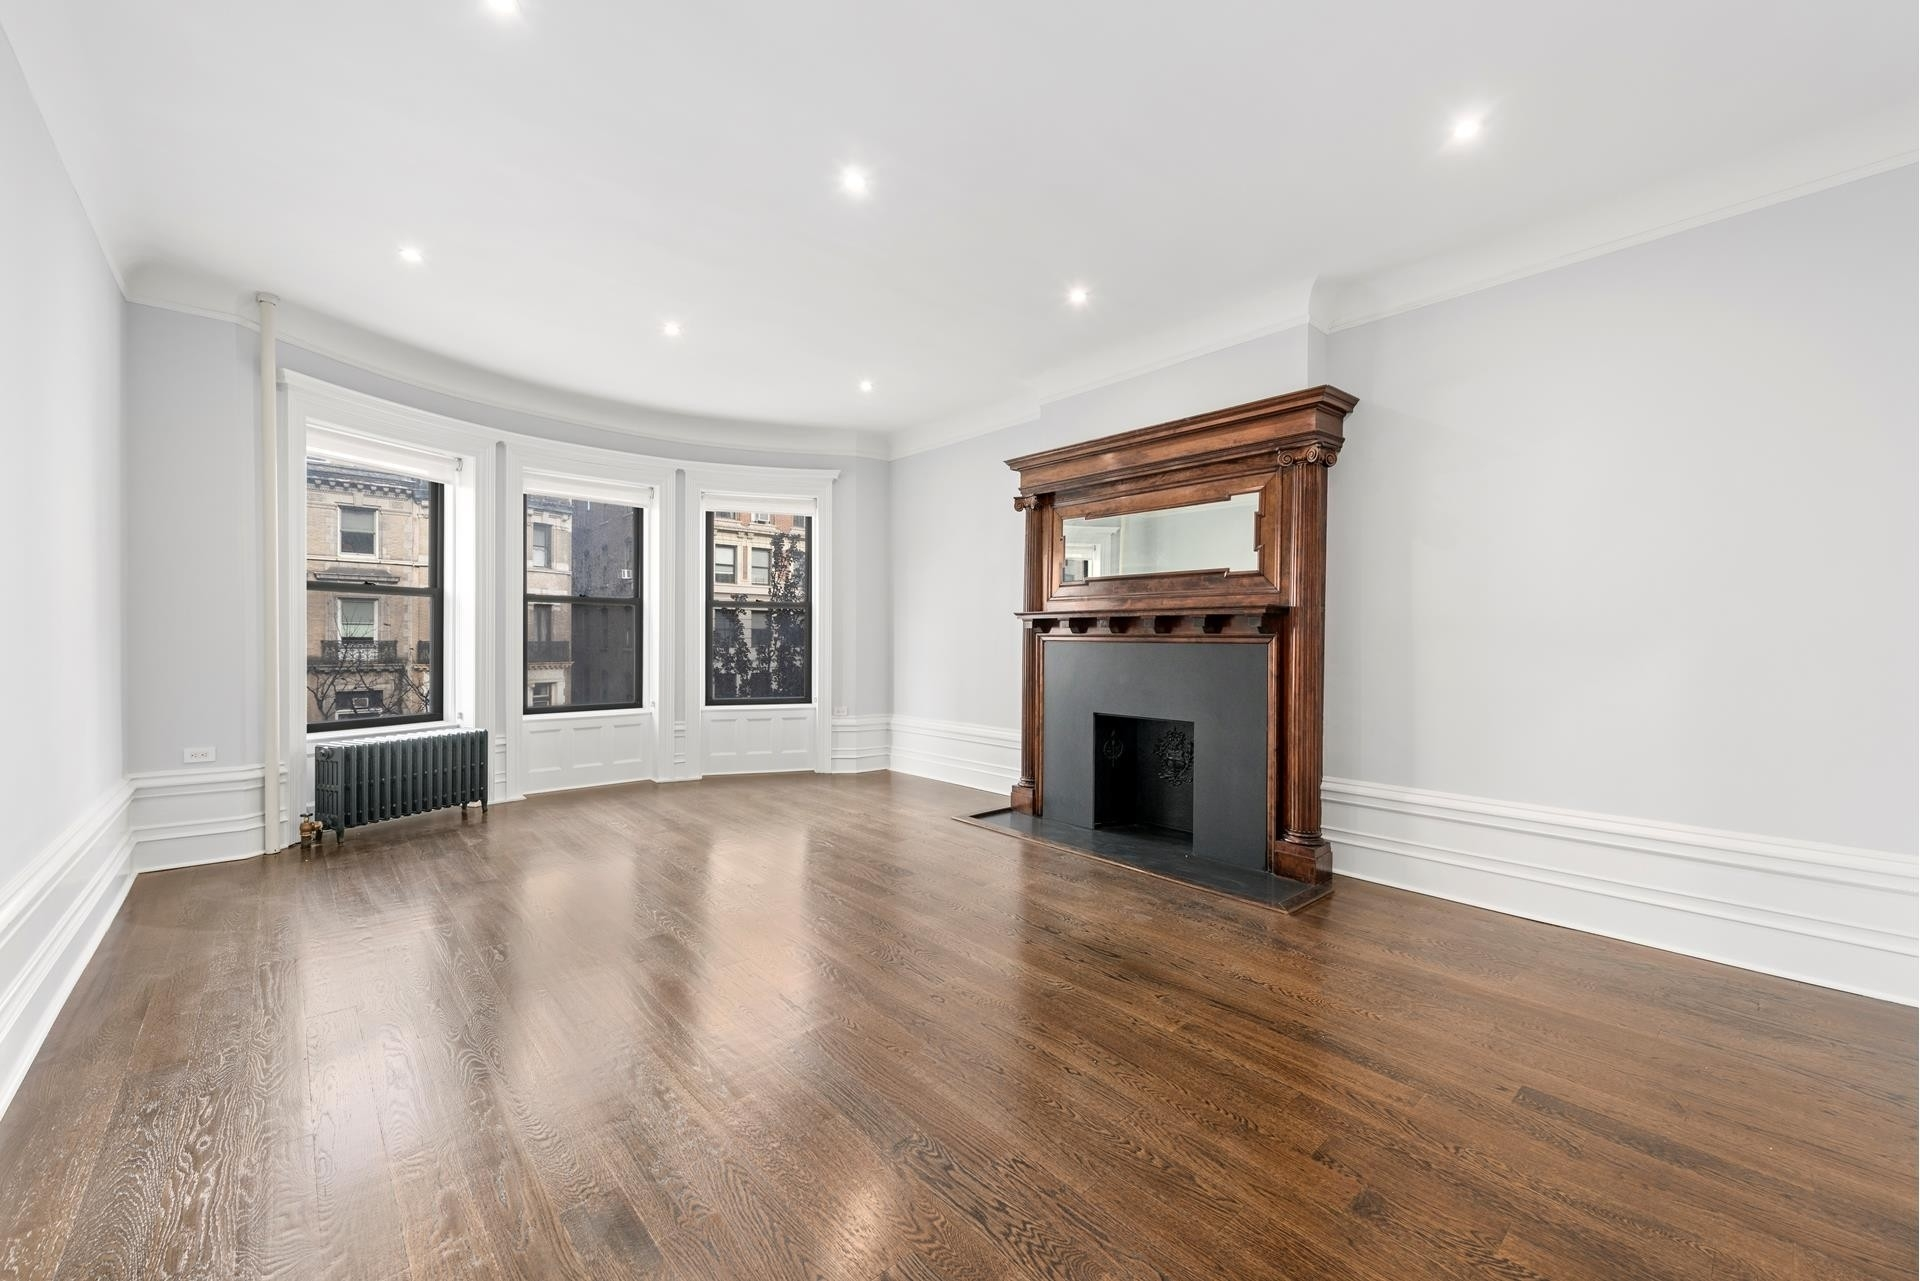 Property at 304 West 106th St, 3F New York